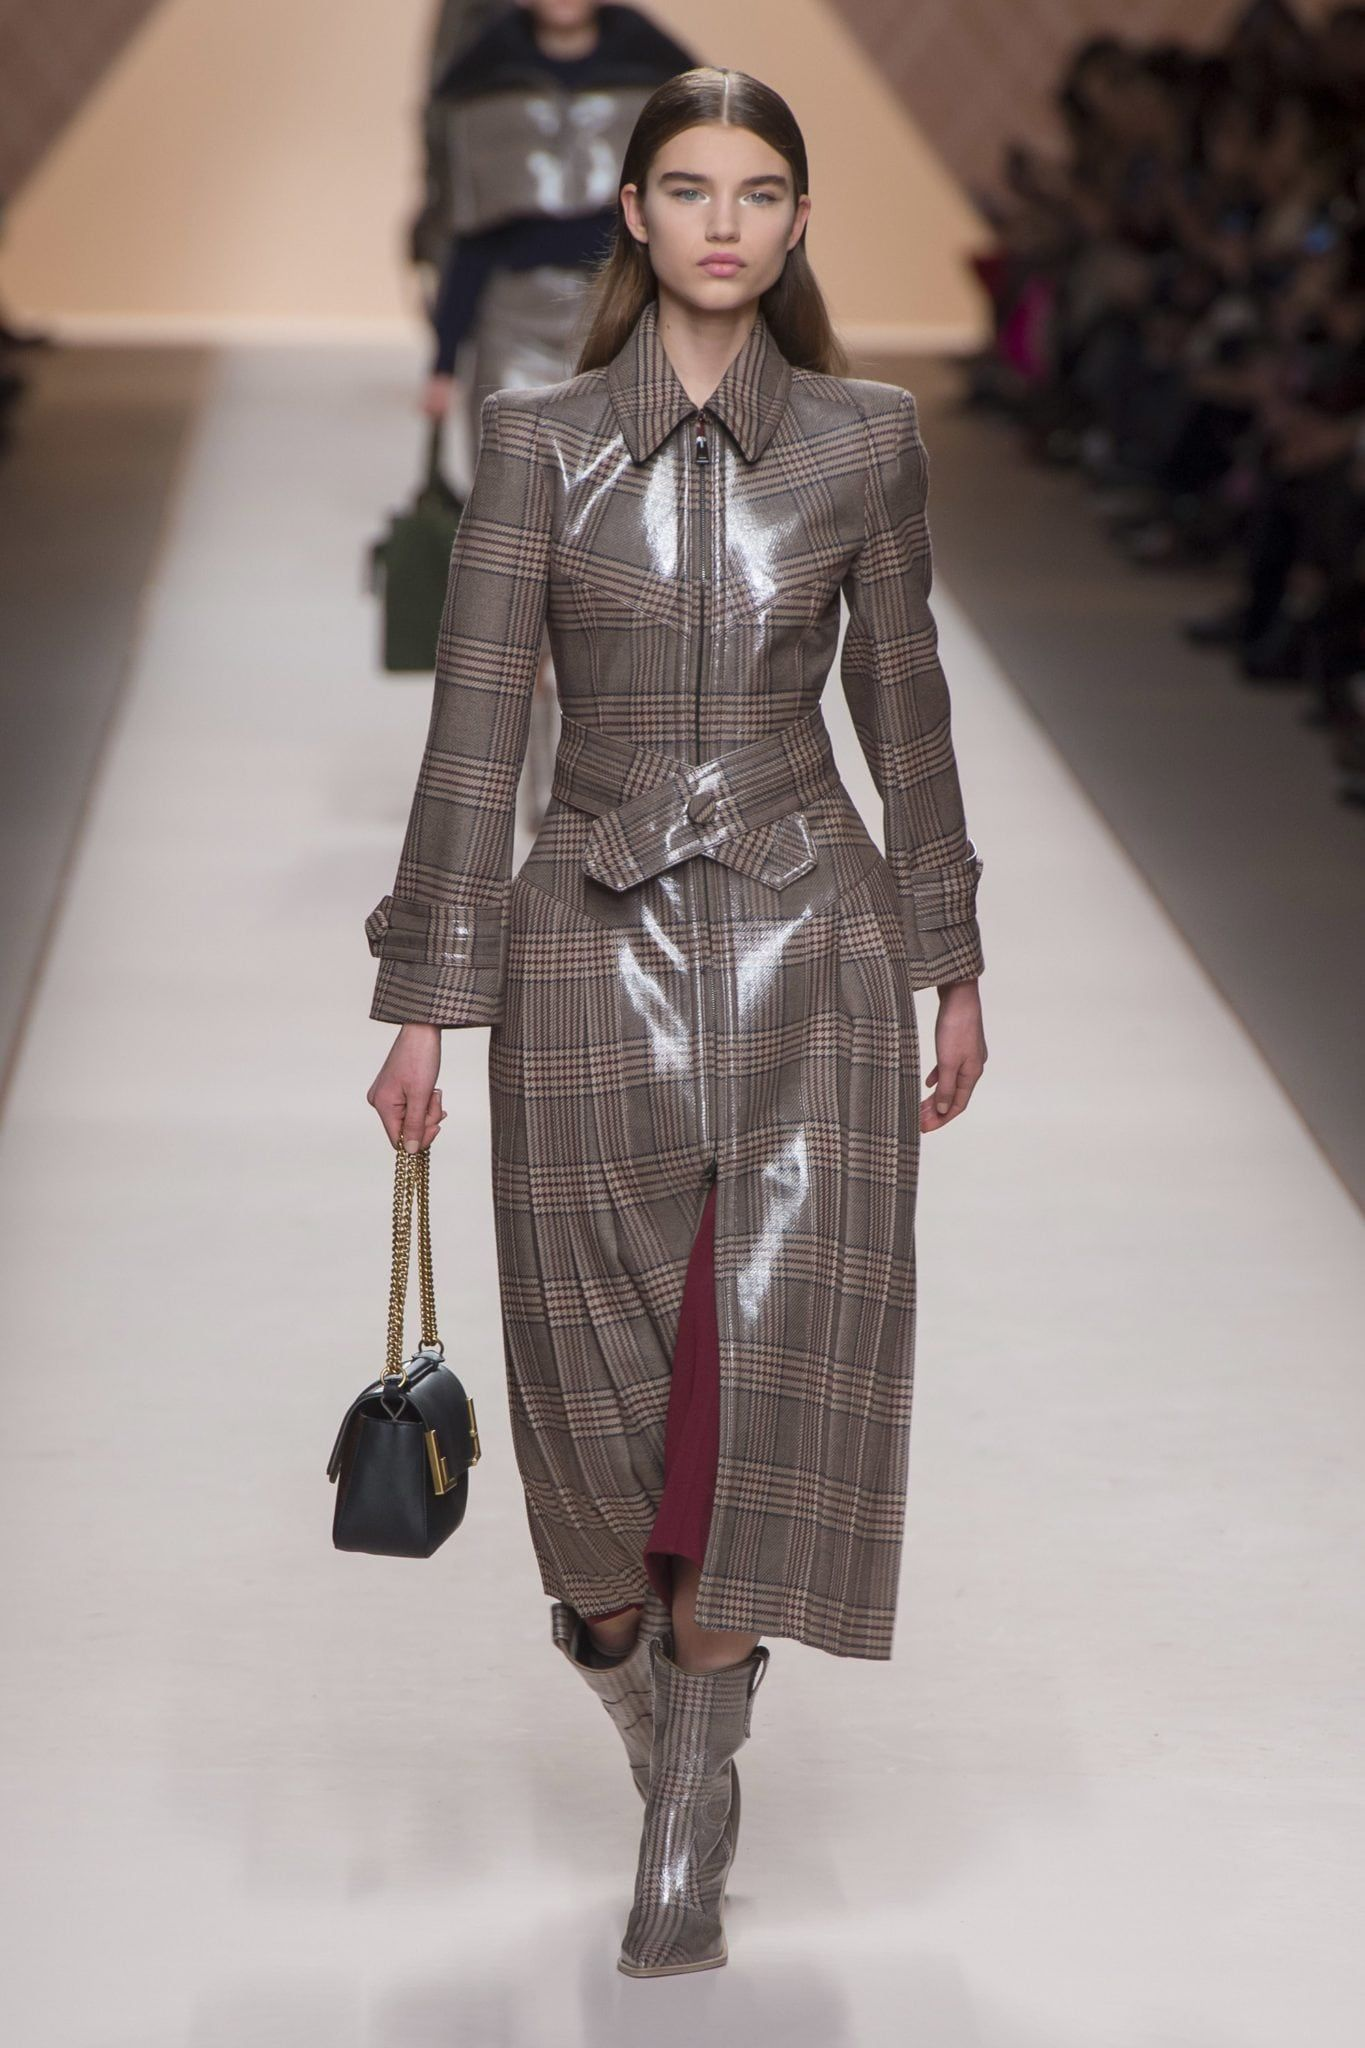 Fall Winter 2018 2019 Trends - Fashion Week Coverage ...